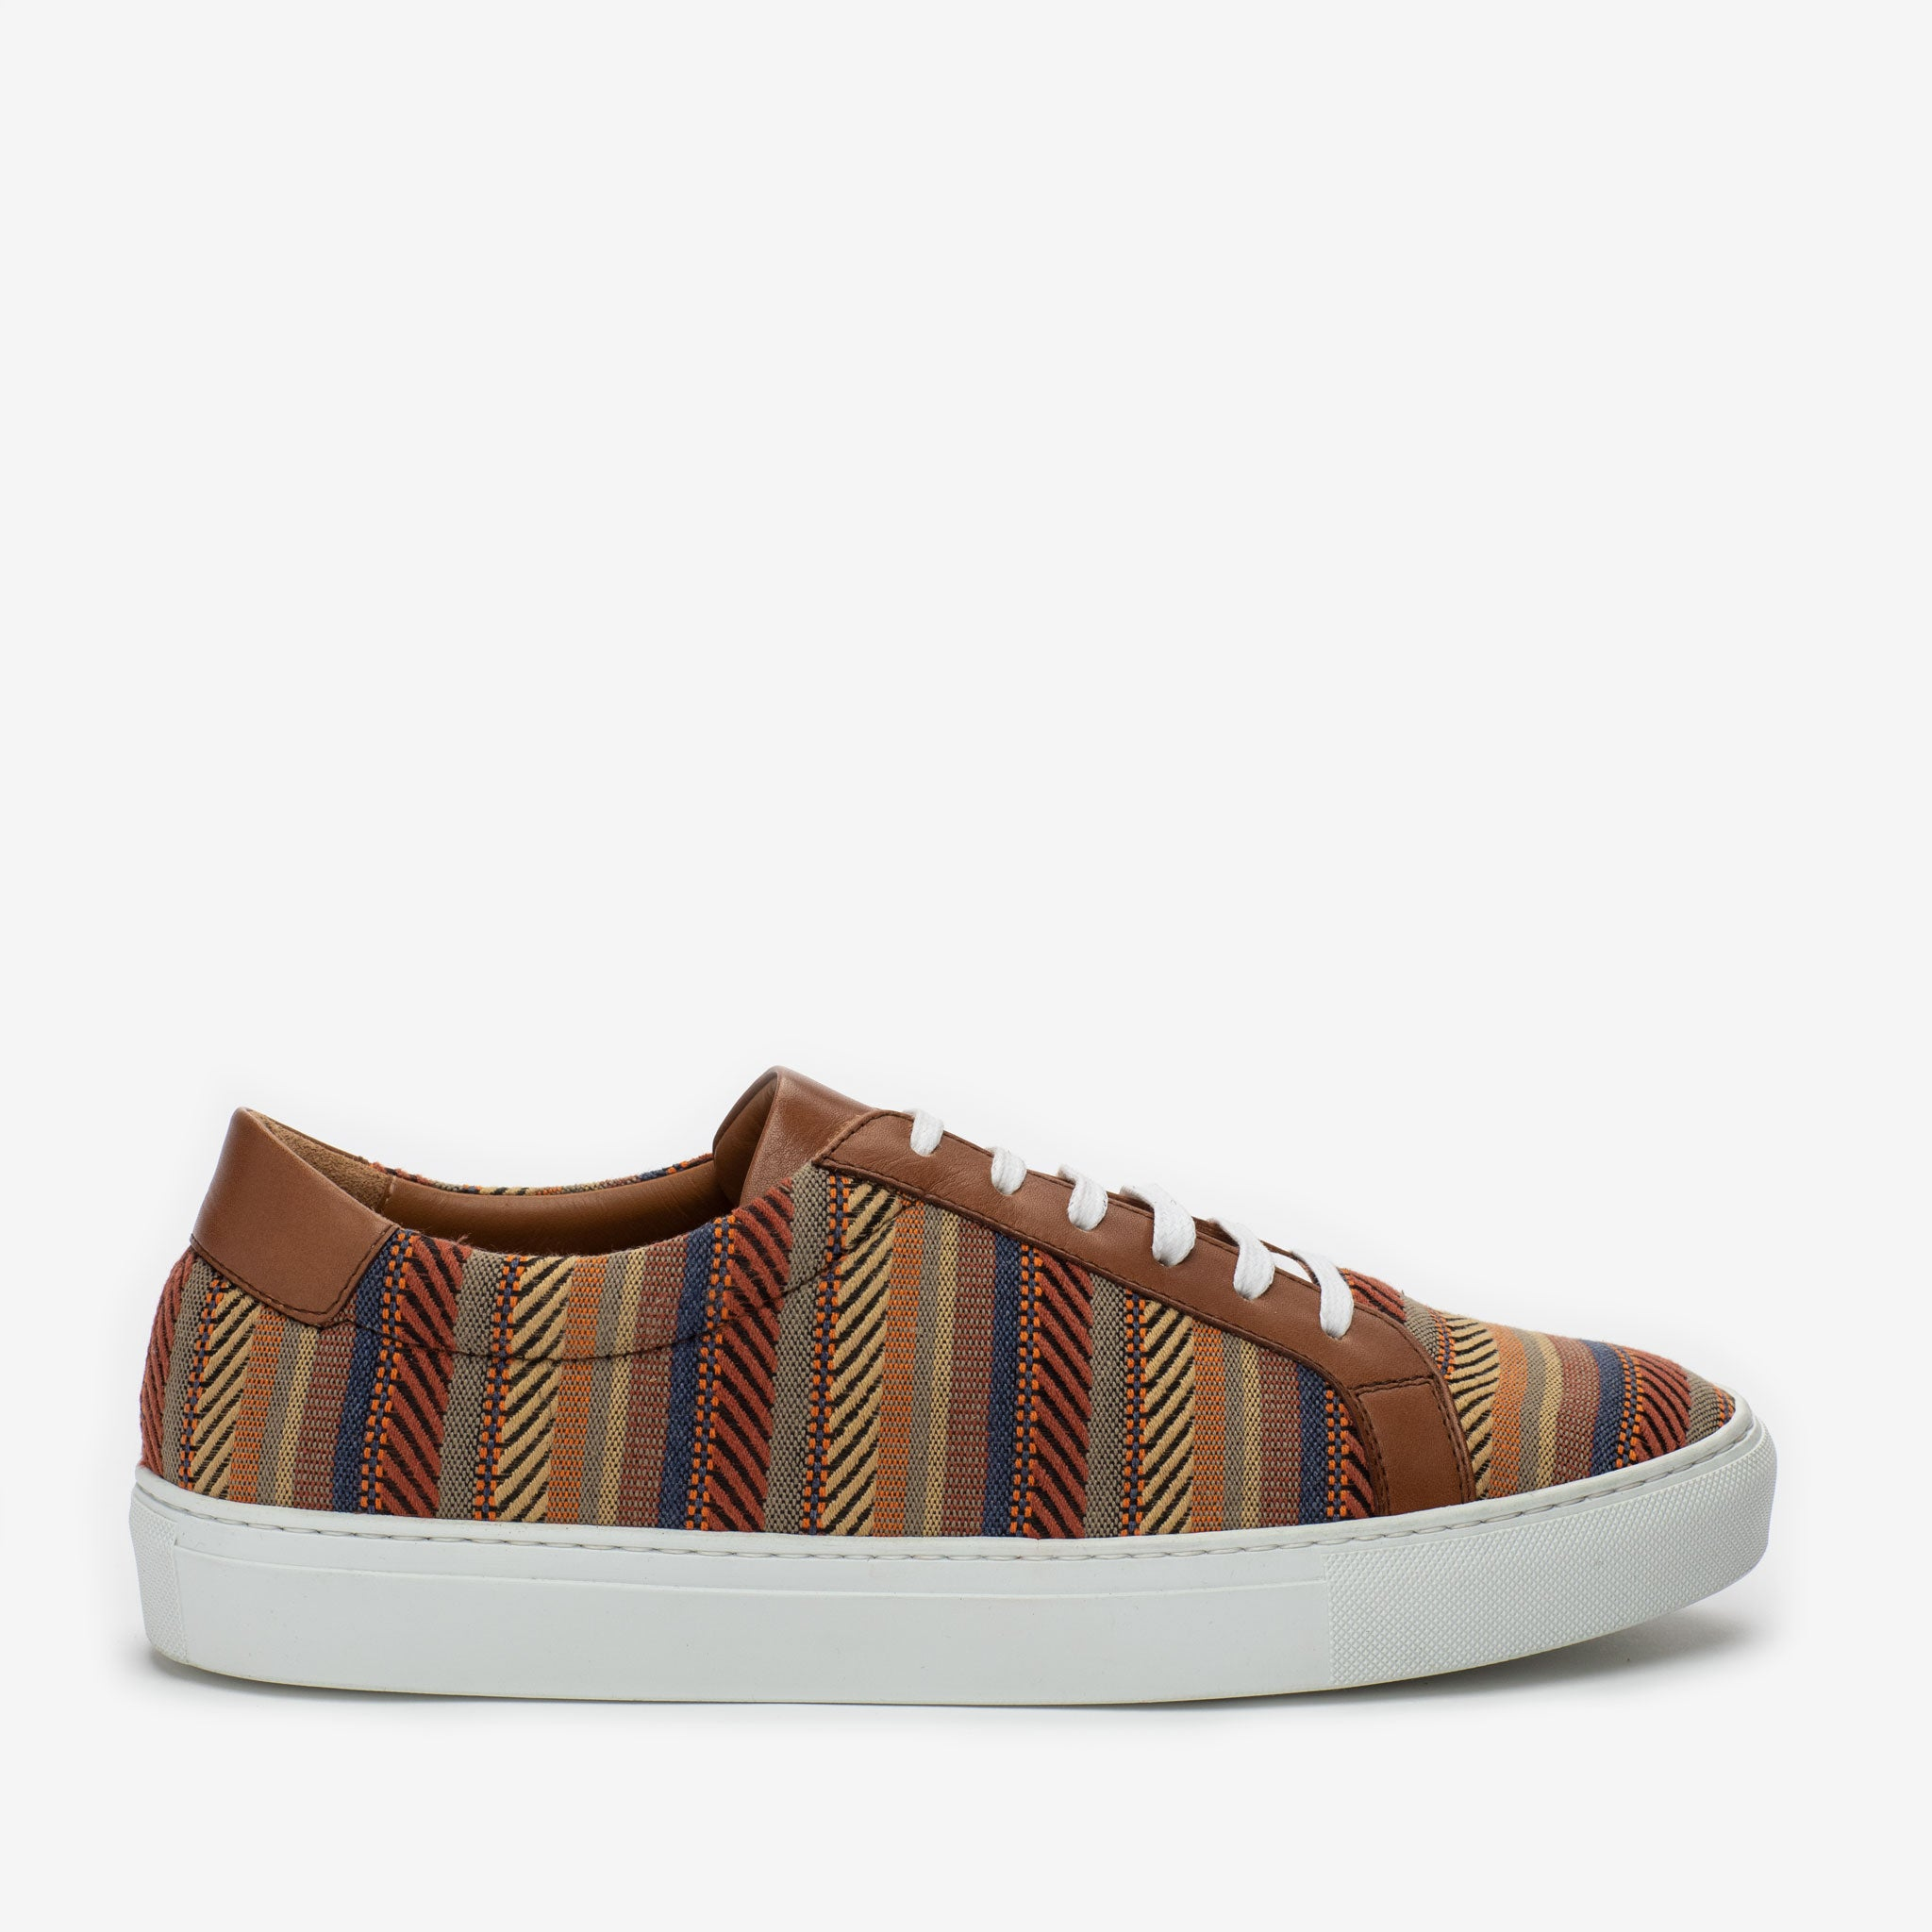 The Sneaker in Sienna Stripes